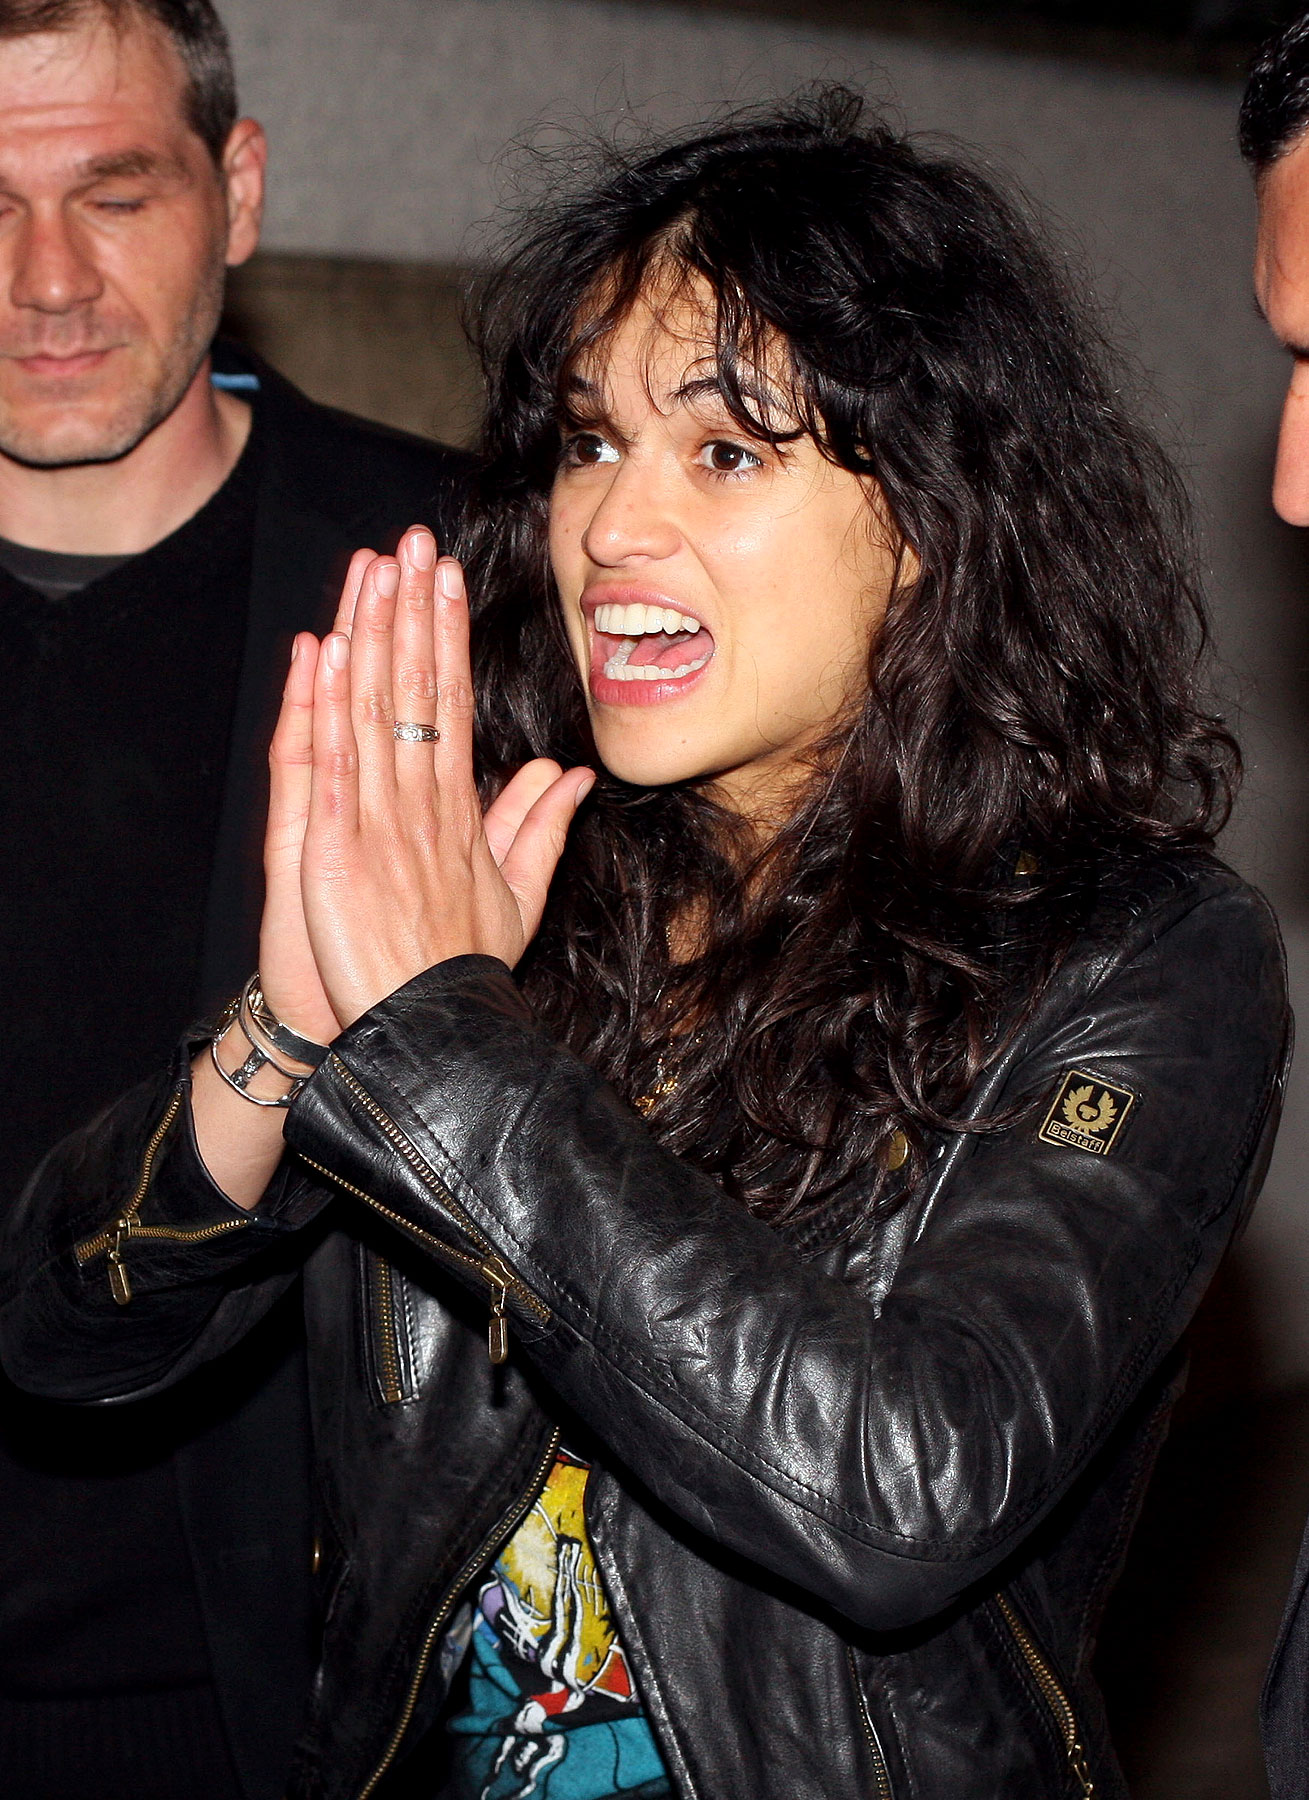 Michelle Rodriguez Hits the Bottle in Cannes? (PHOTOS)